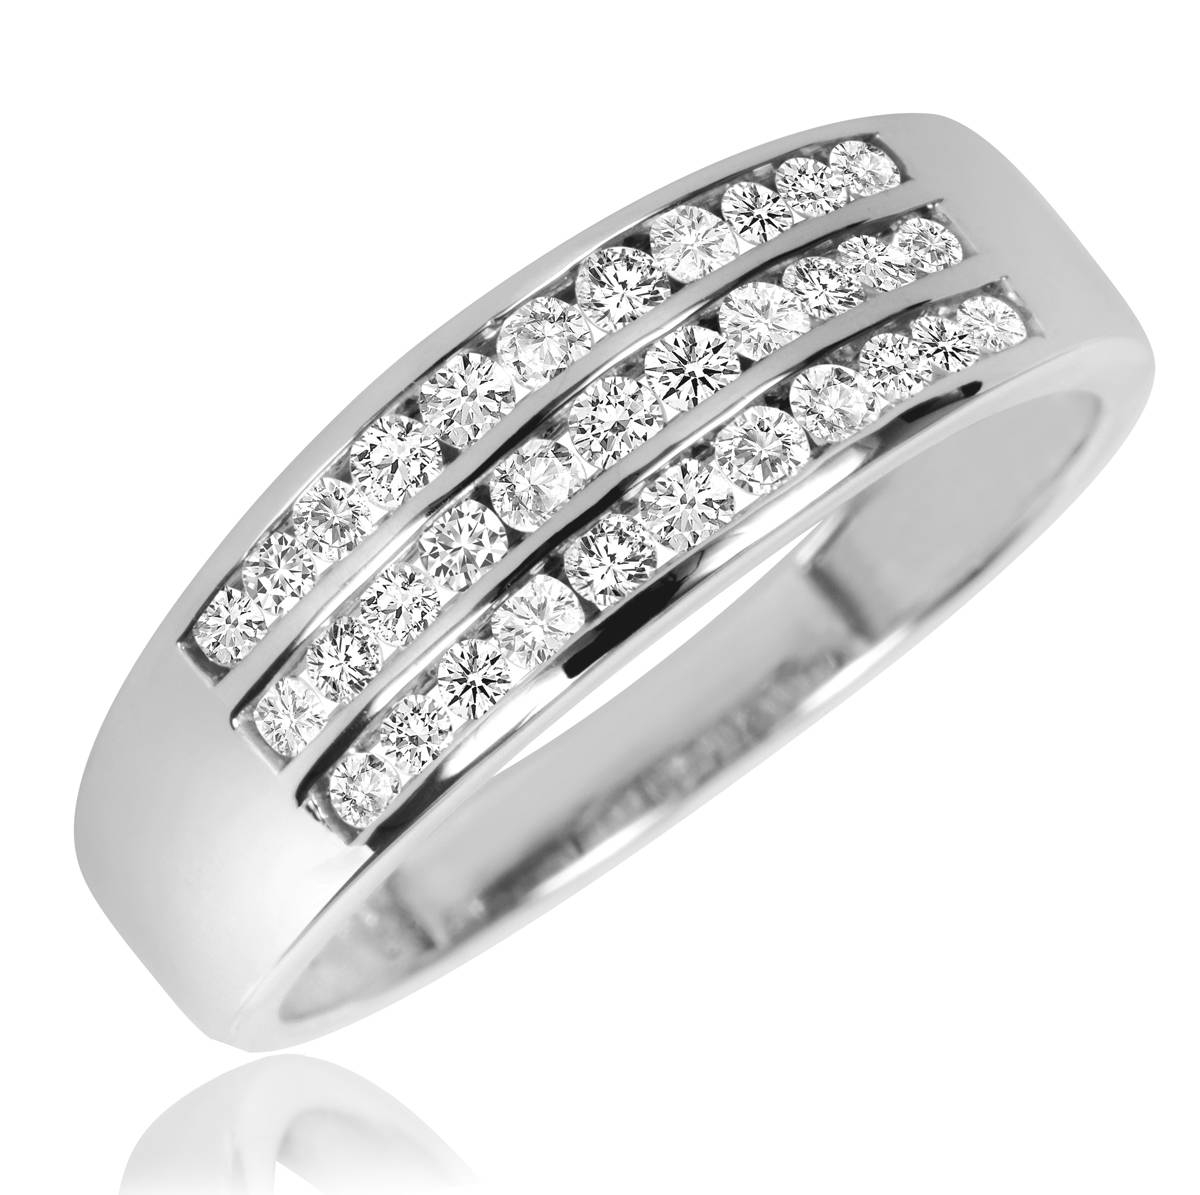 2/3 Carat T.w. Diamond Men's Wedding Band 10K White Gold Intended For Mens Wedding Rings With Diamonds (Gallery 7 of 15)